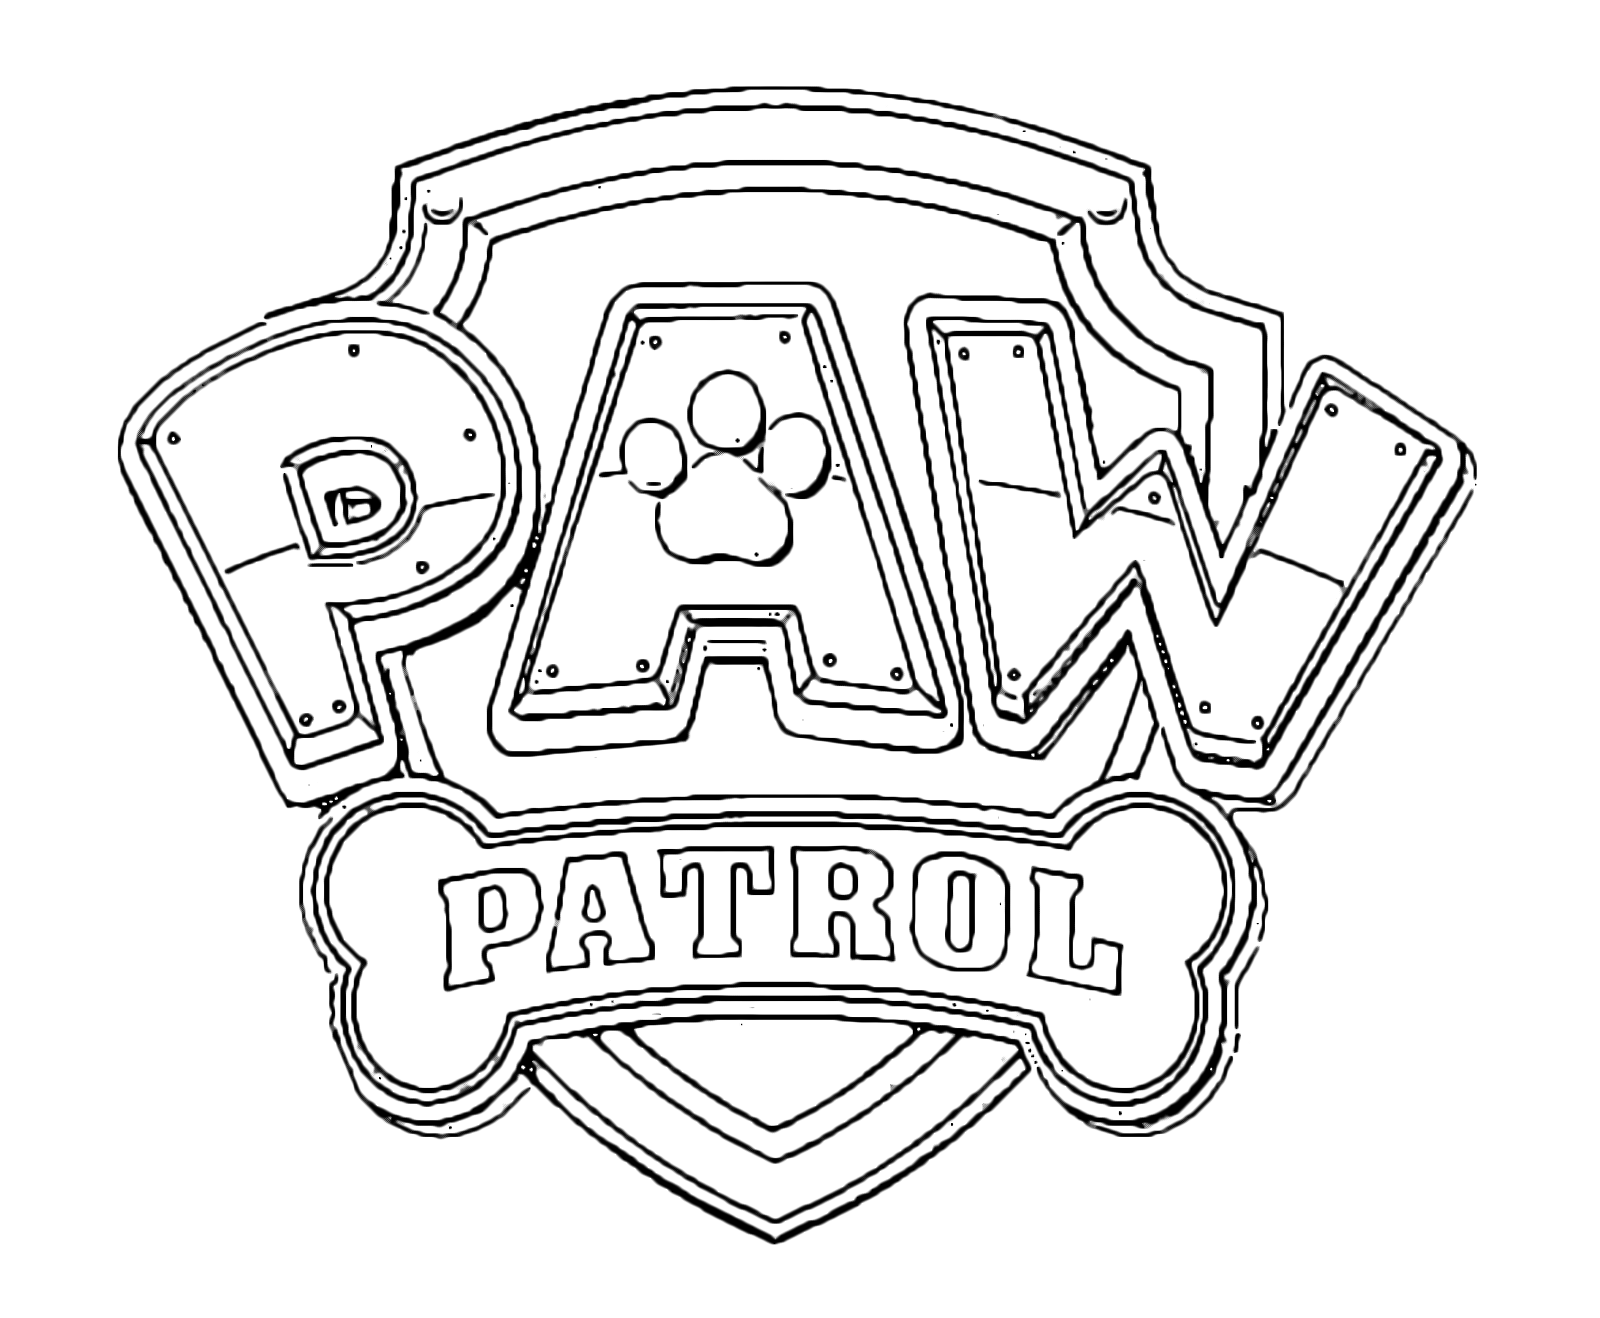 Paw patrol logo coloring pages - The Paw Patrol Logo